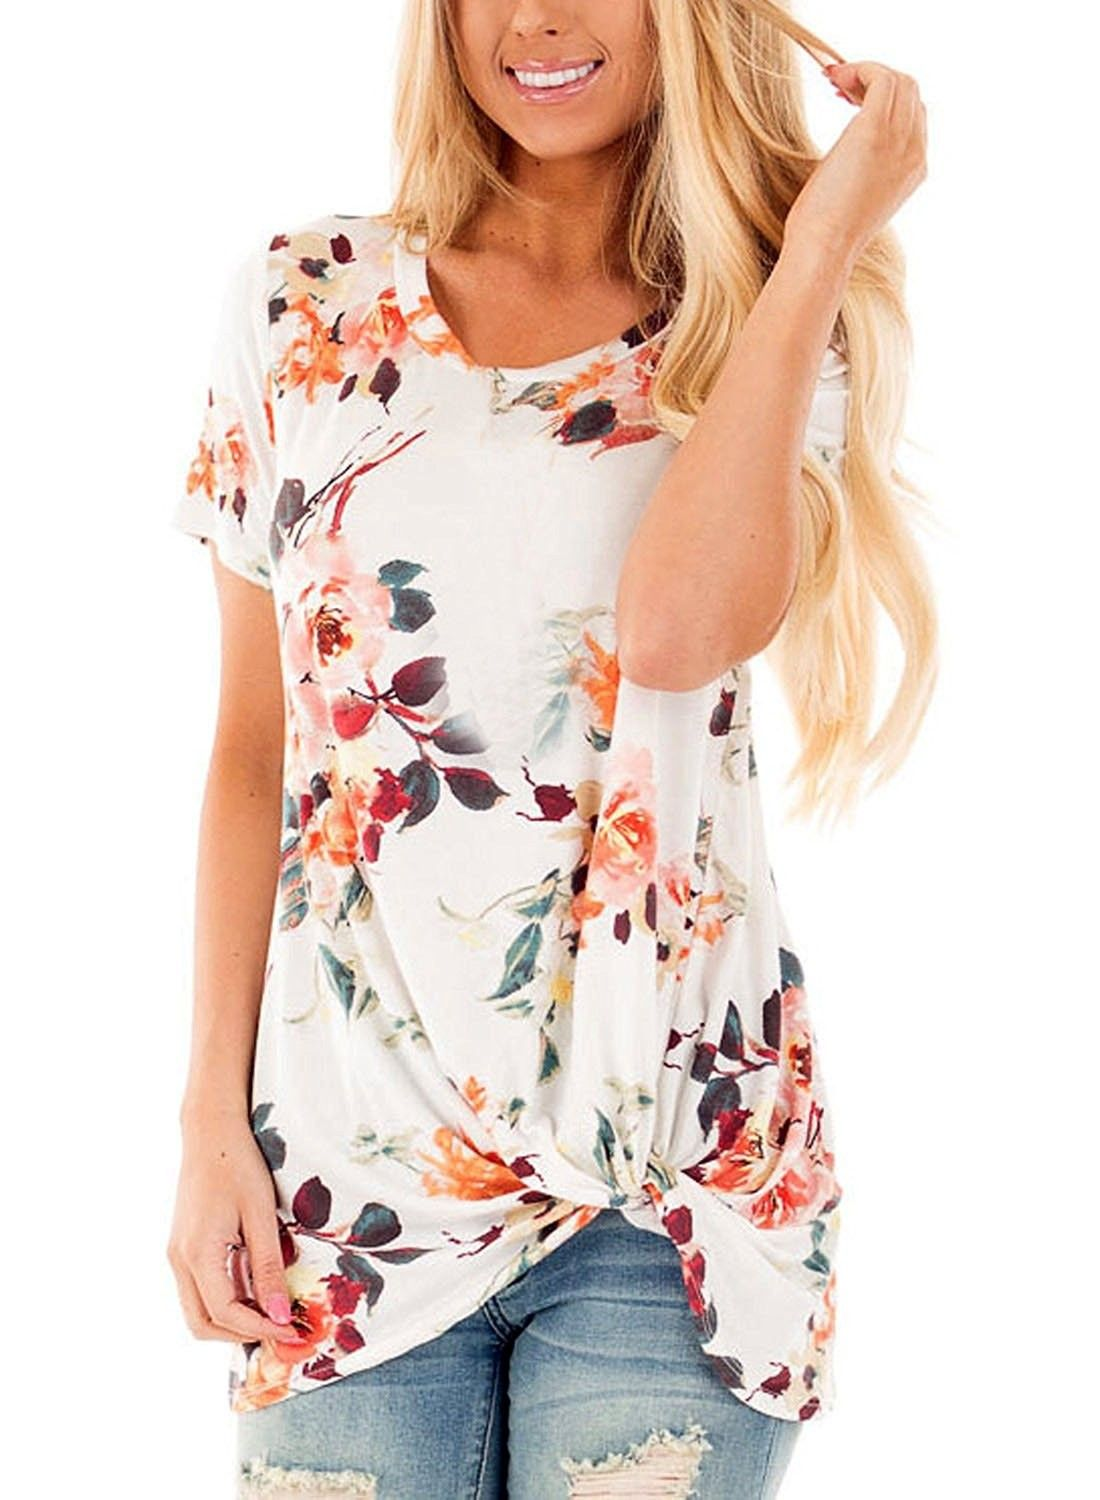 cdcfbc0c3f9b Womens Summer Casual Short Sleeve Floral Knot Blouse Tops and T ...